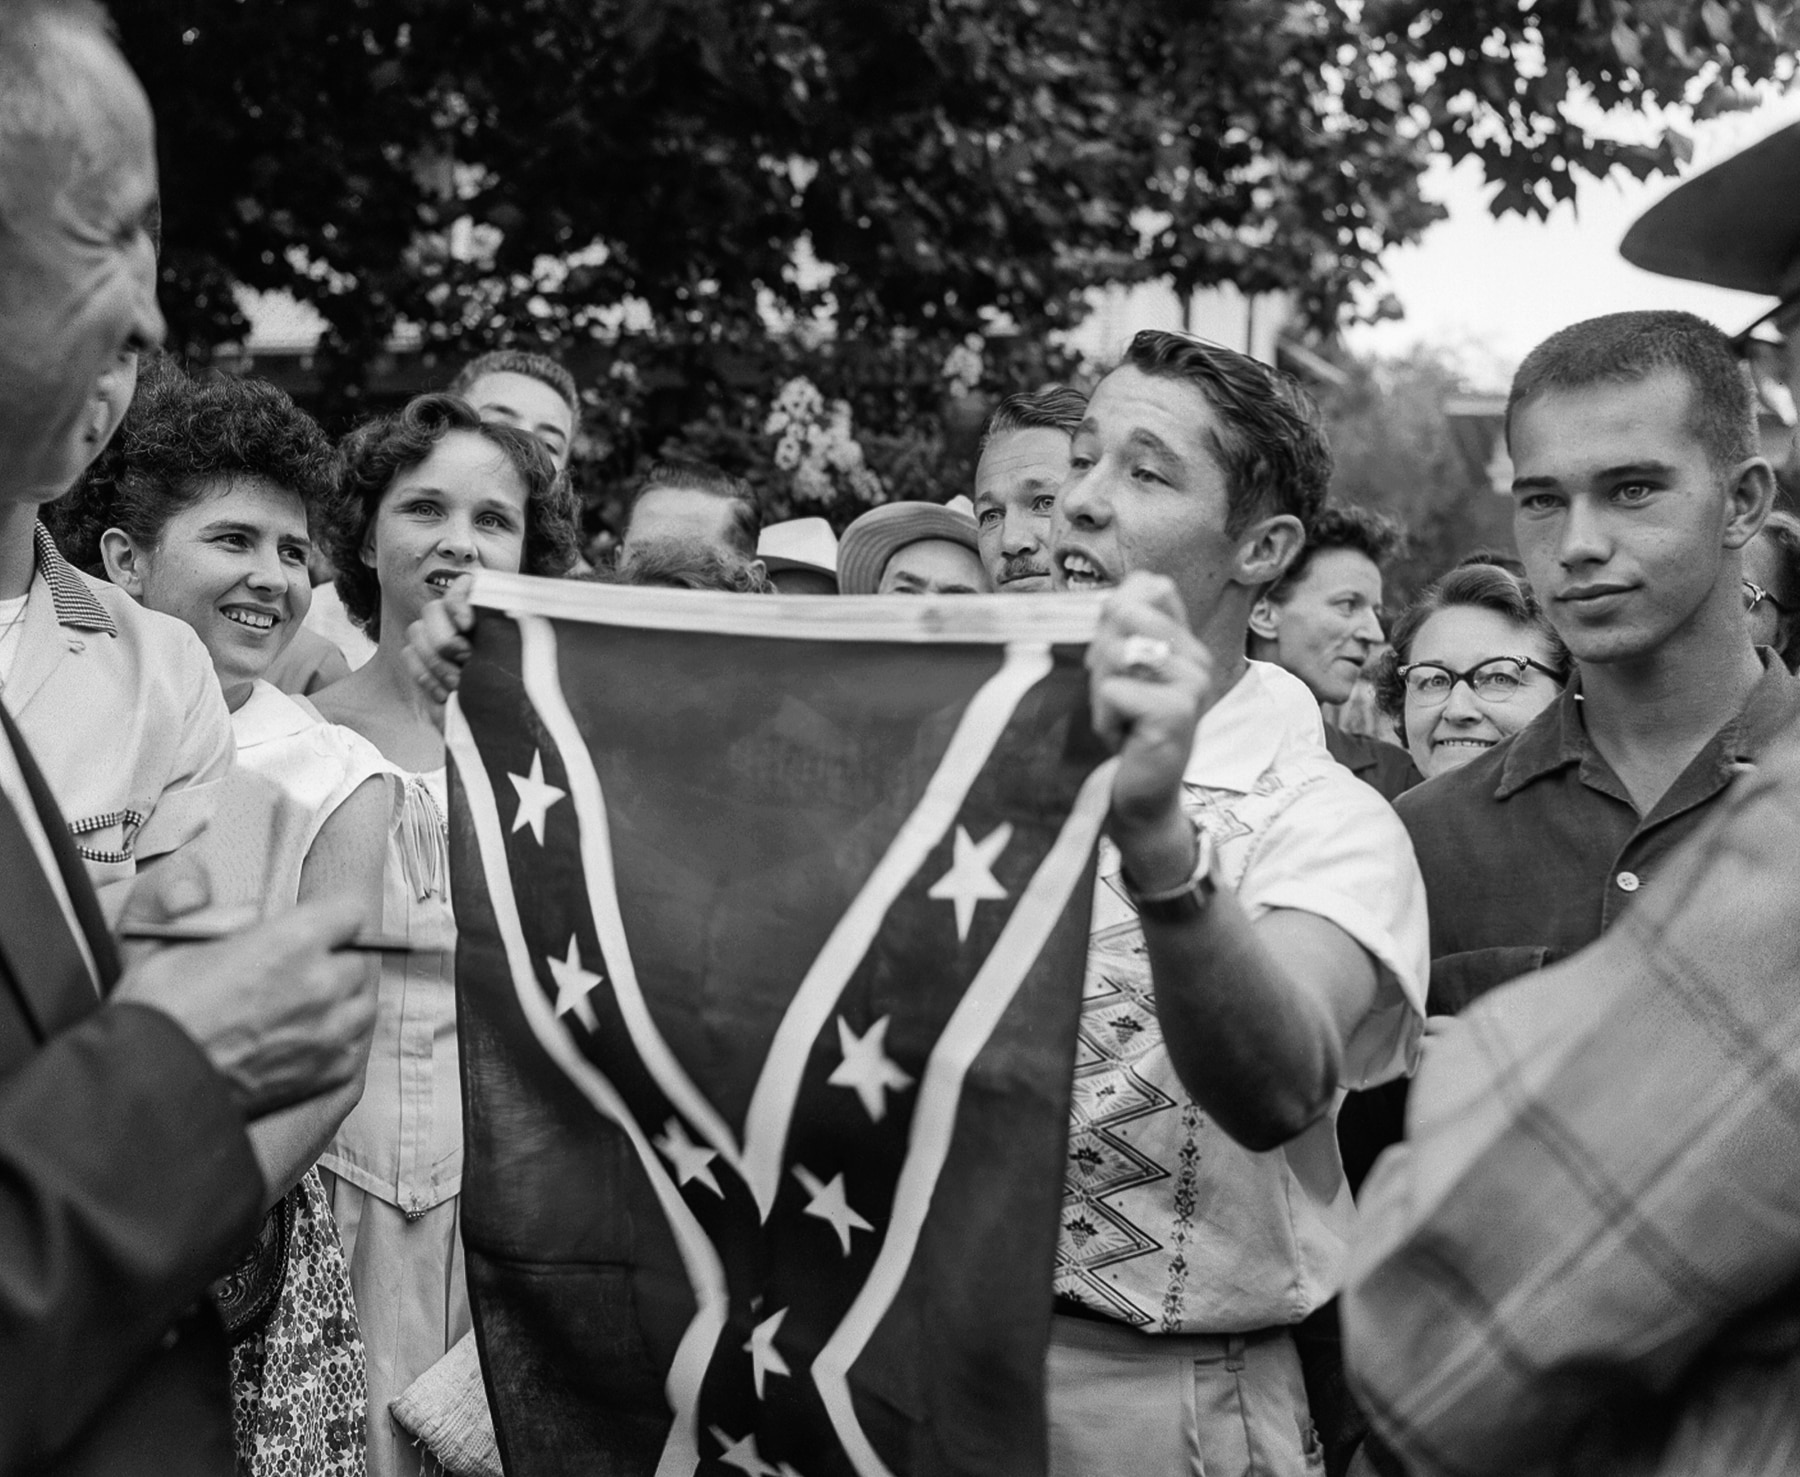 Man in group of people holding flag confronting another man (© AP Images)